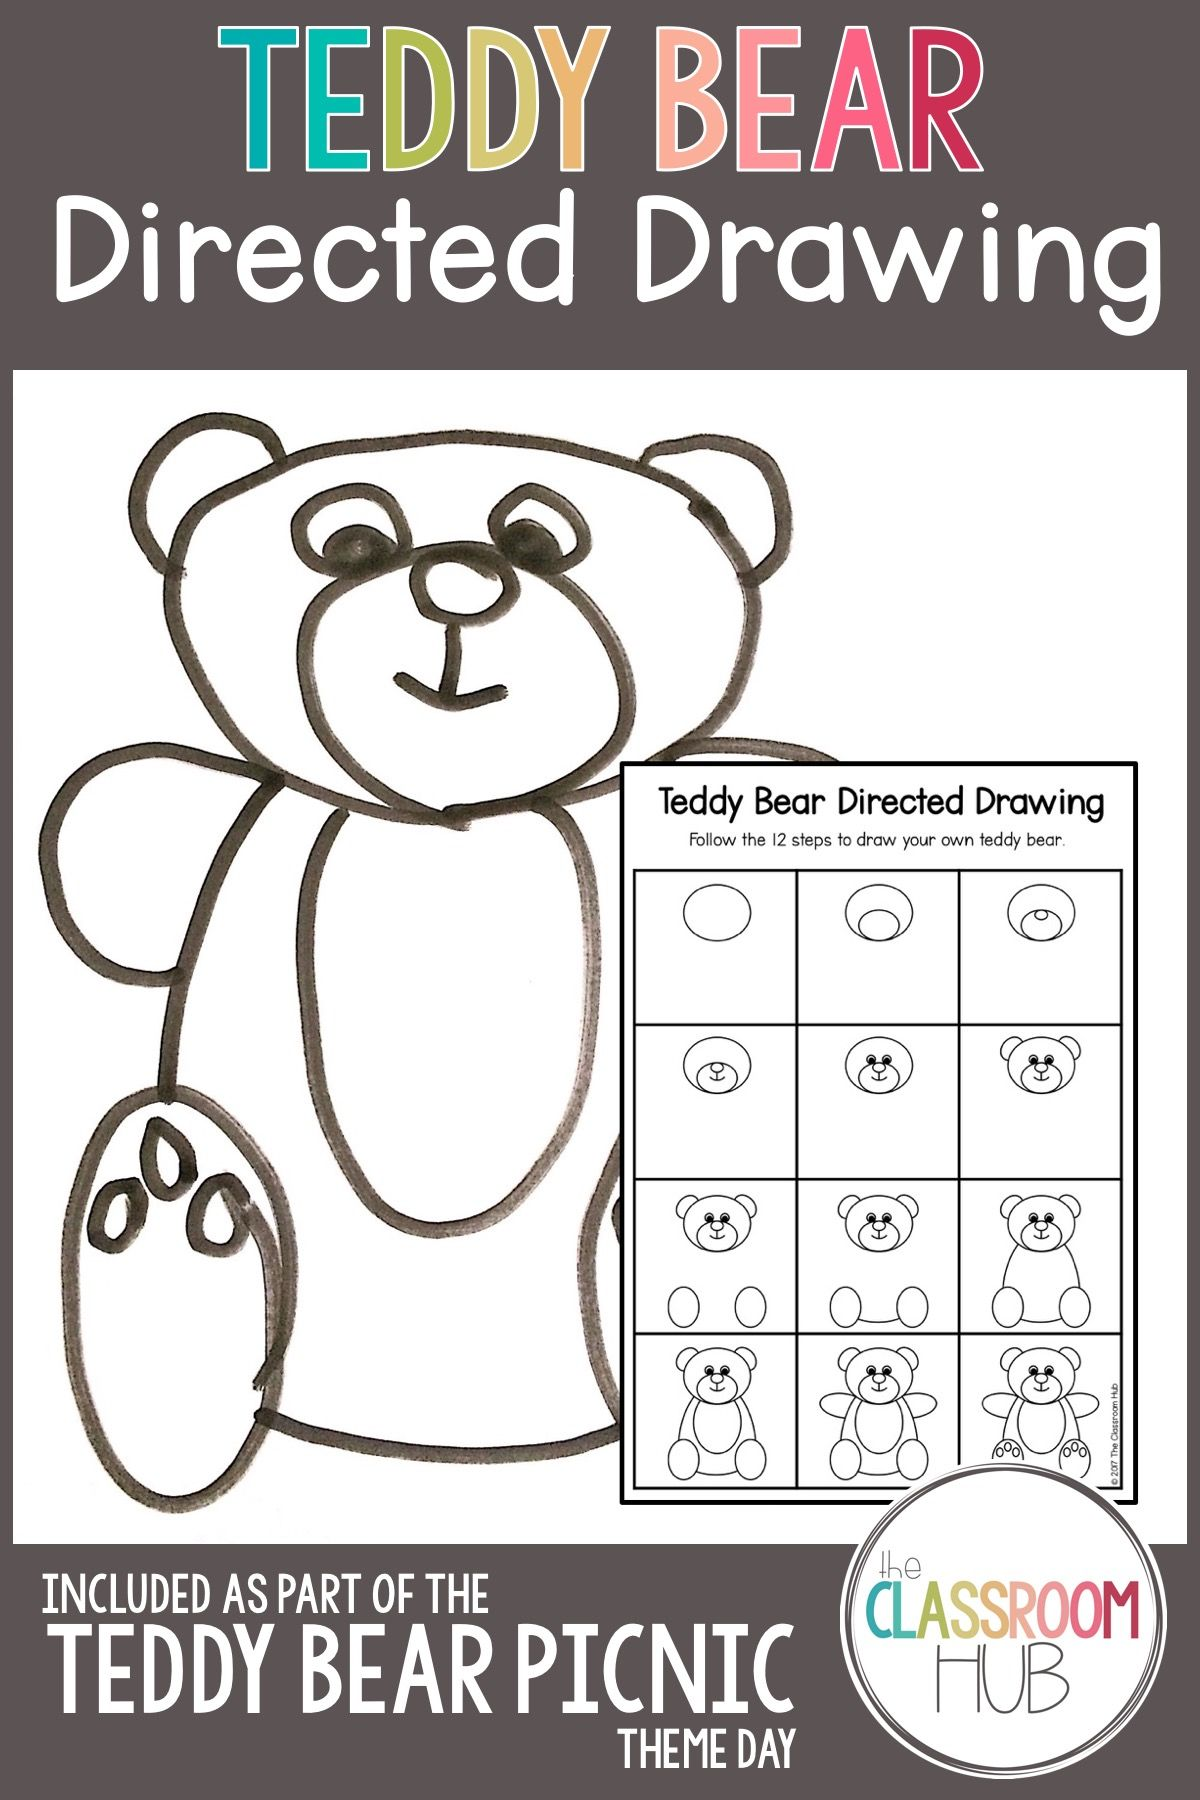 Teddy Bear Directed Drawing Is Part Of Our Picnic Theme Day Resource Your